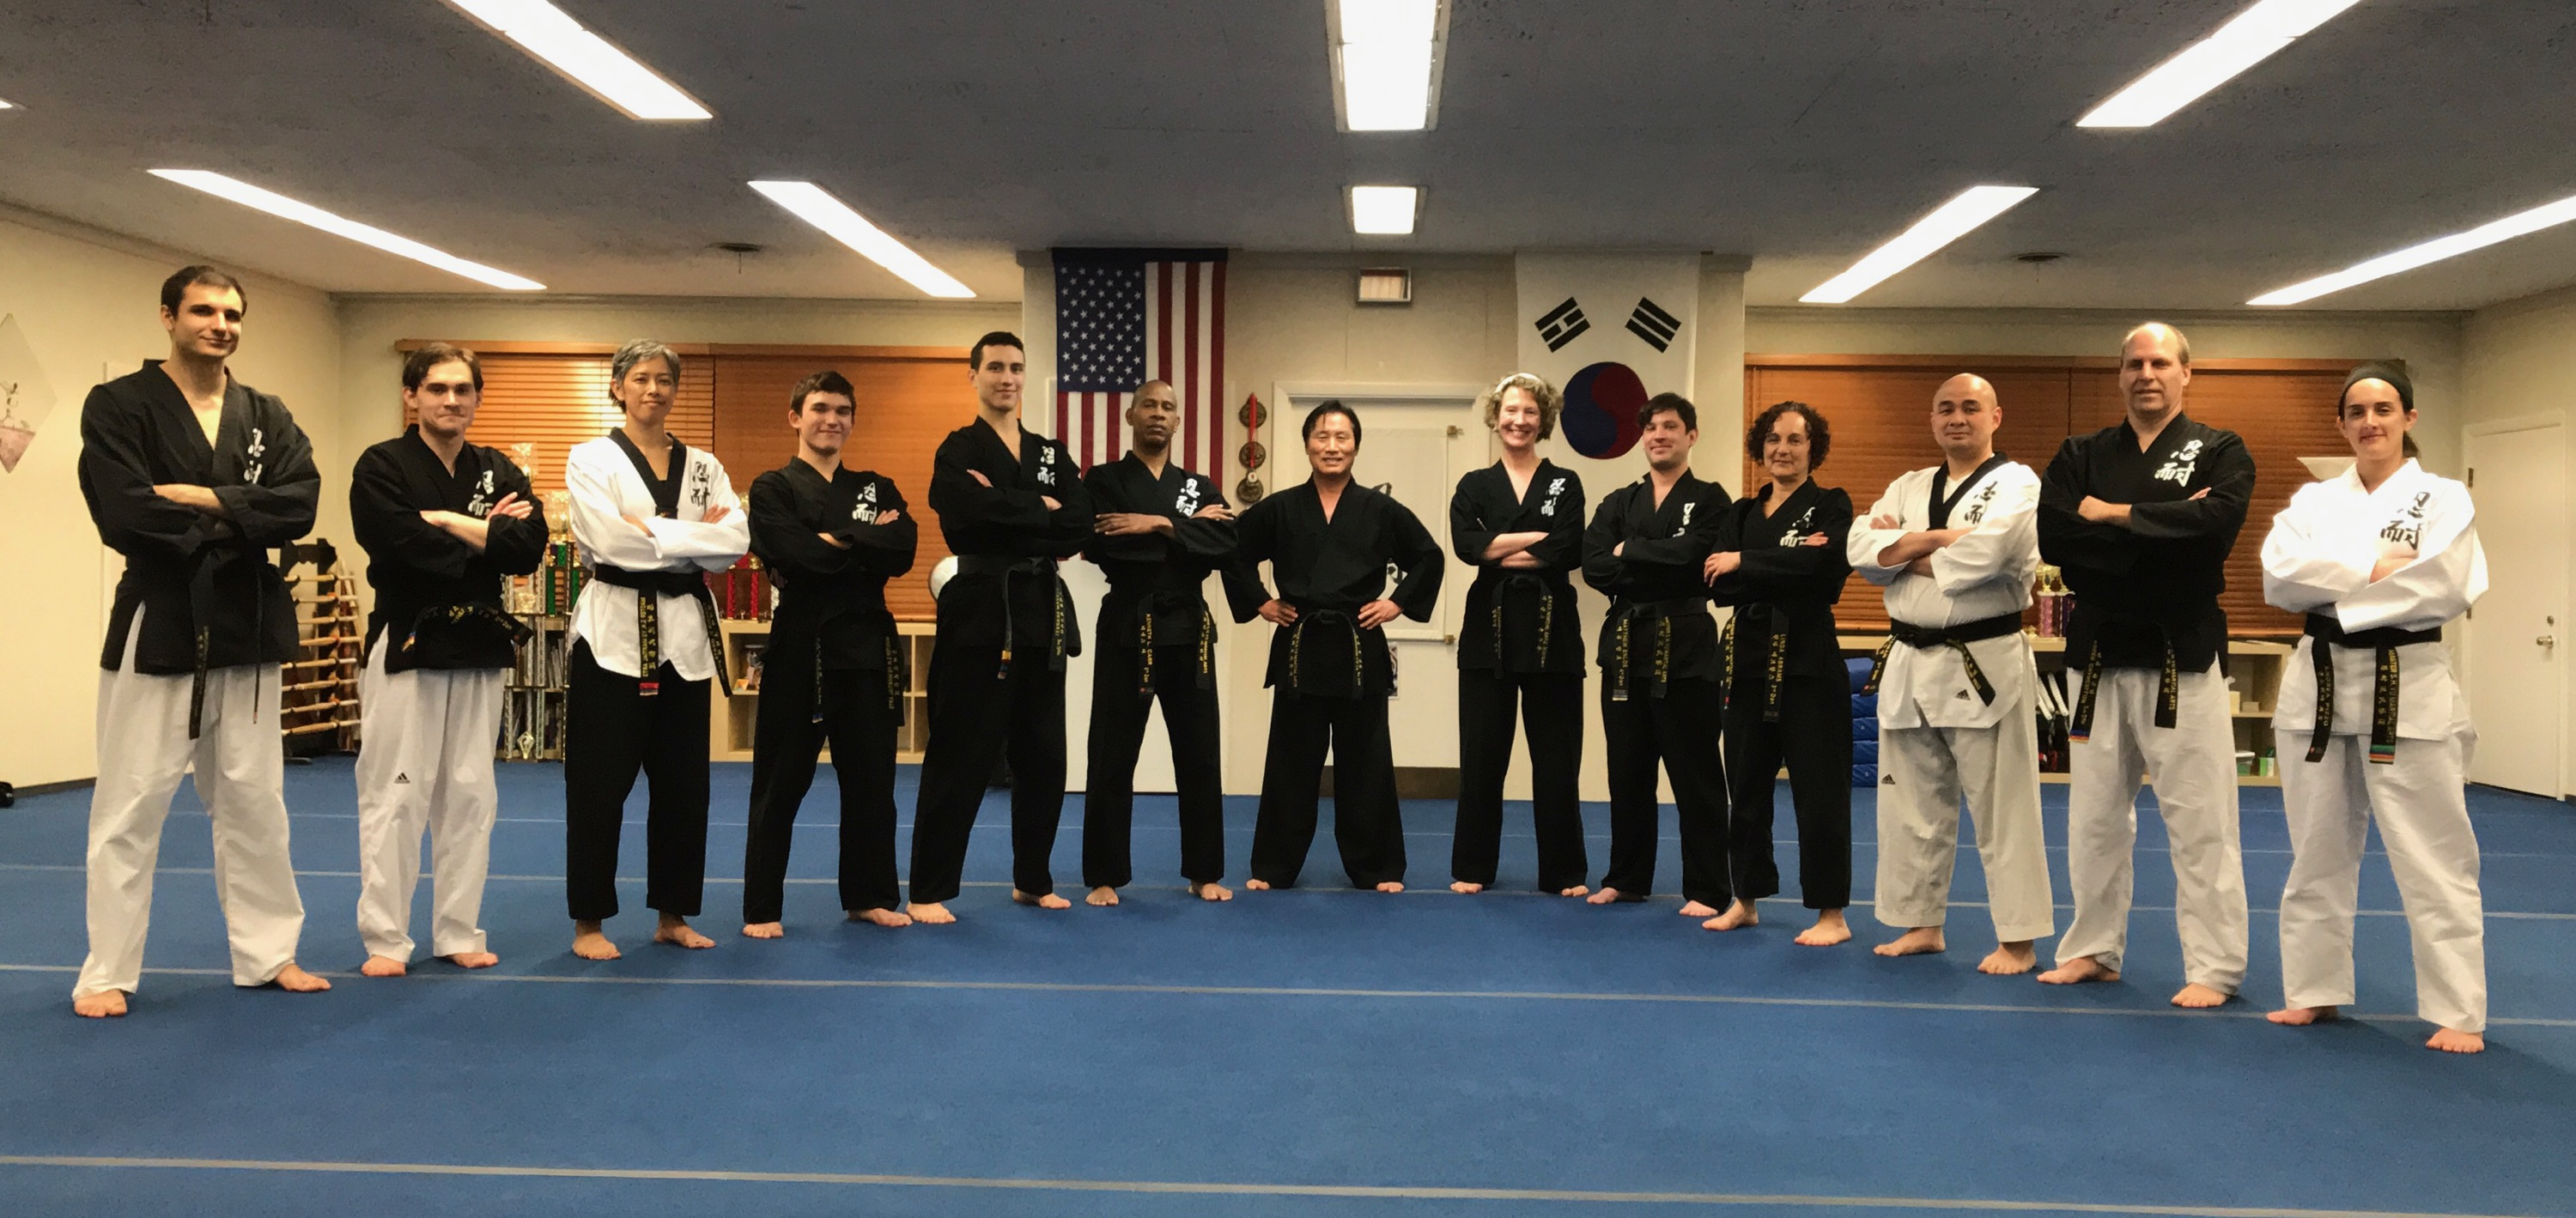 Teaching Martial Arts: The Way of the Master